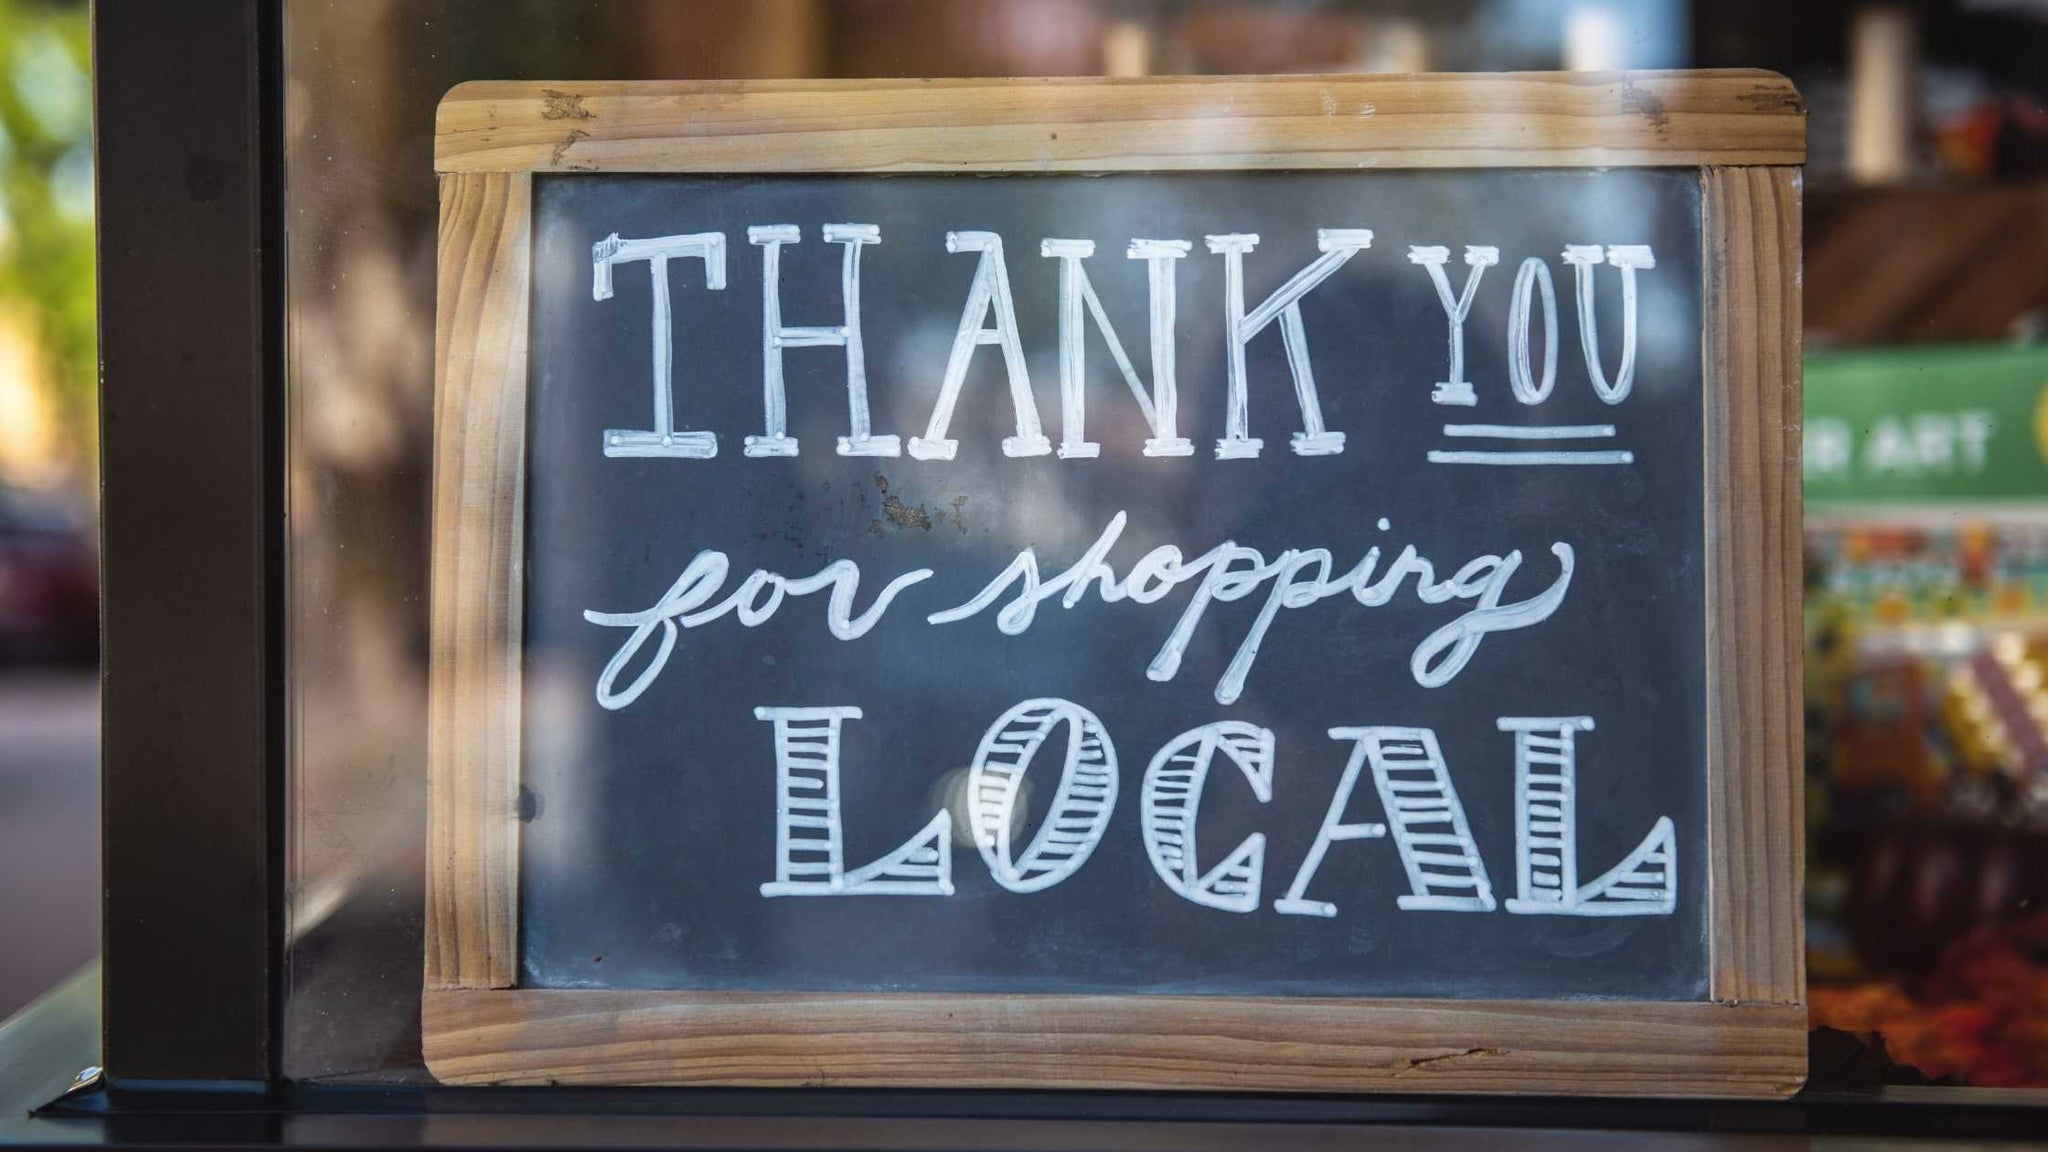 Thank you for shopping local sign in the window